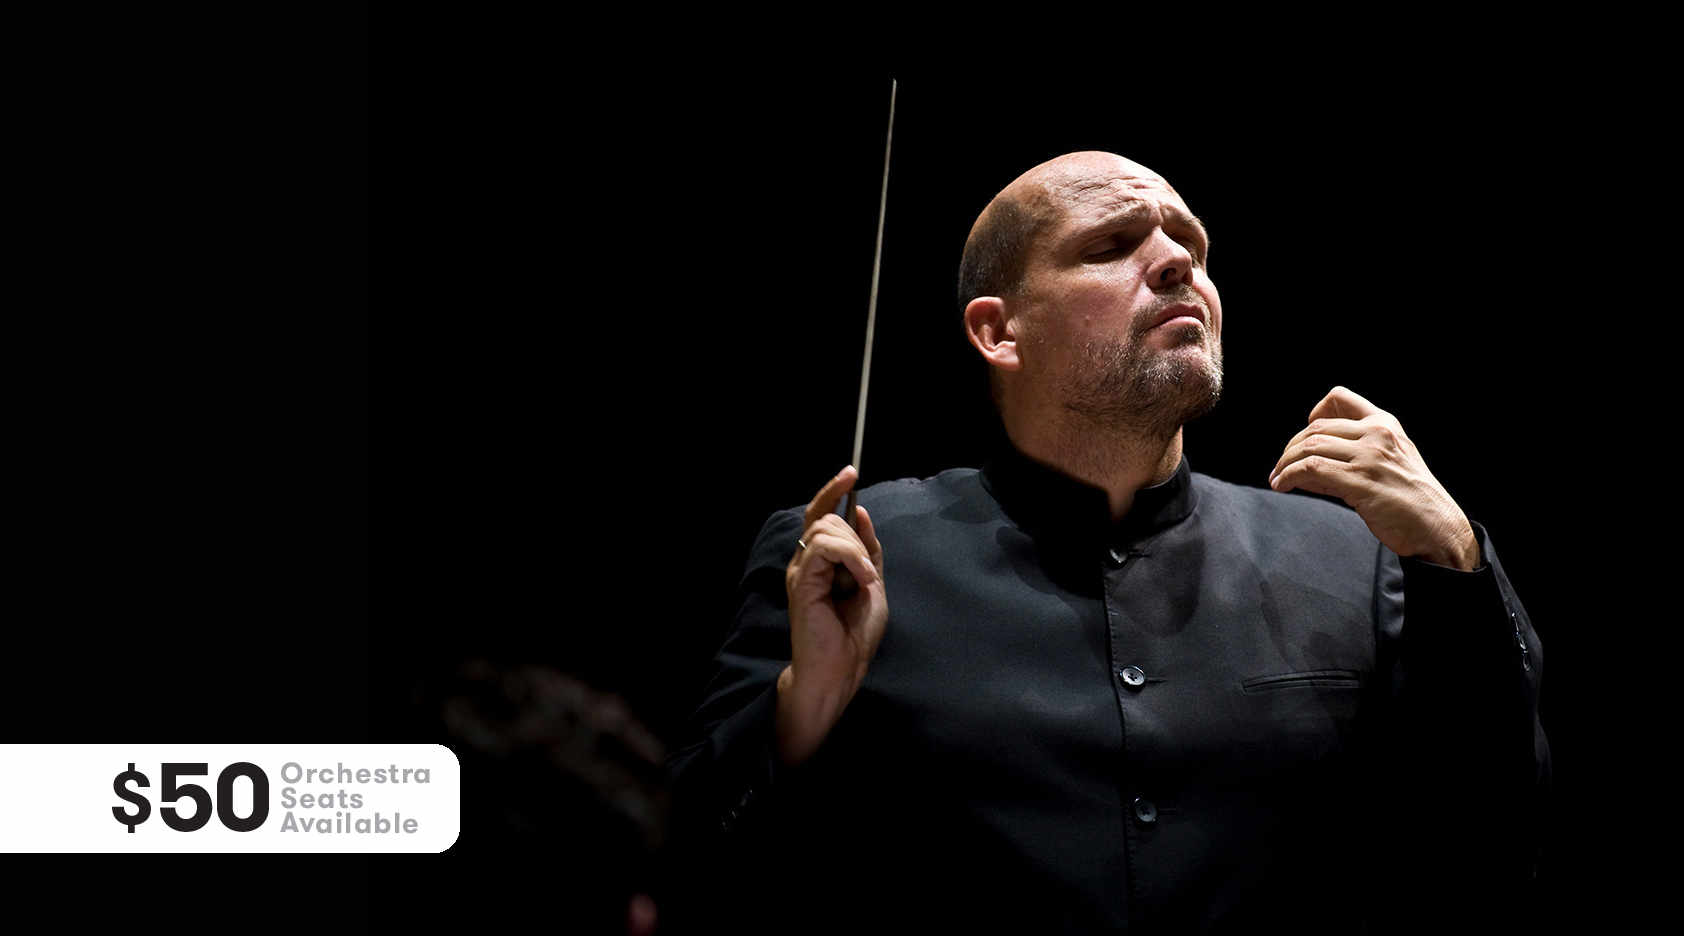 Van Zweden Conducts Wagner's <em>Die Walküre</em> (Act I)